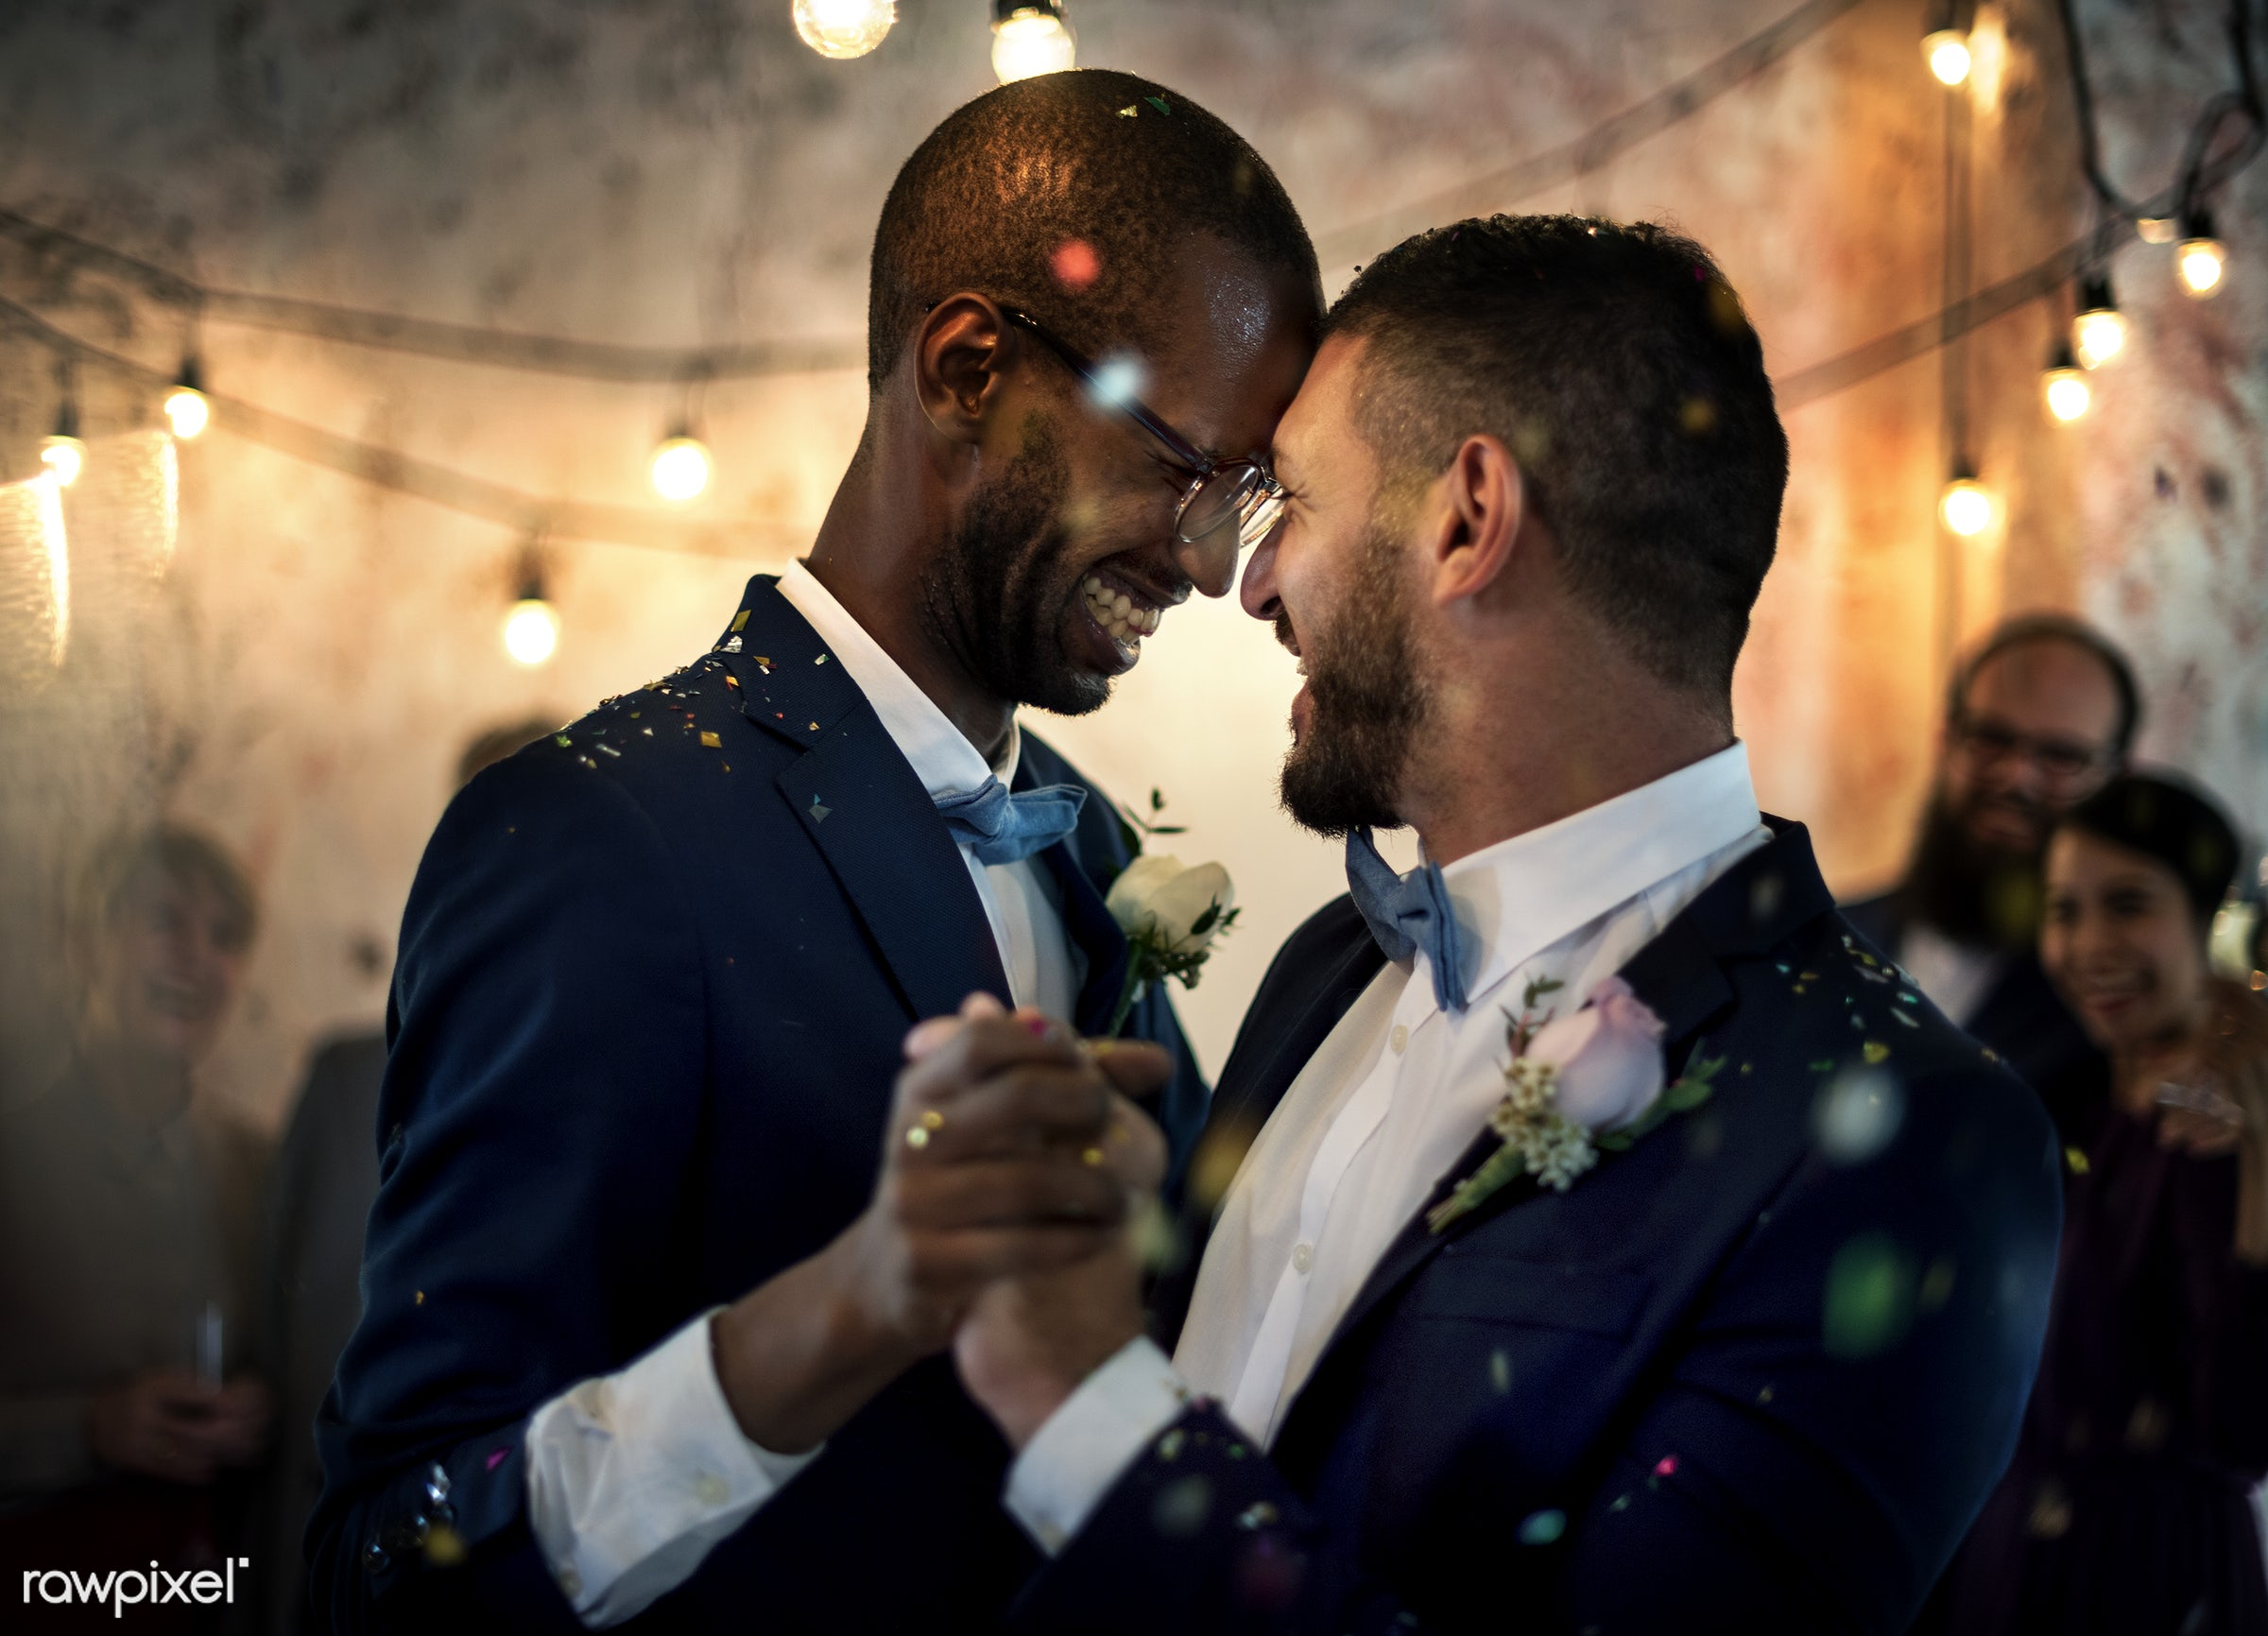 Gay couple dancing on wedding day - groom, lgbt, gay, homosexual, marriage, wedding, love, equality, sweet, closeness,...